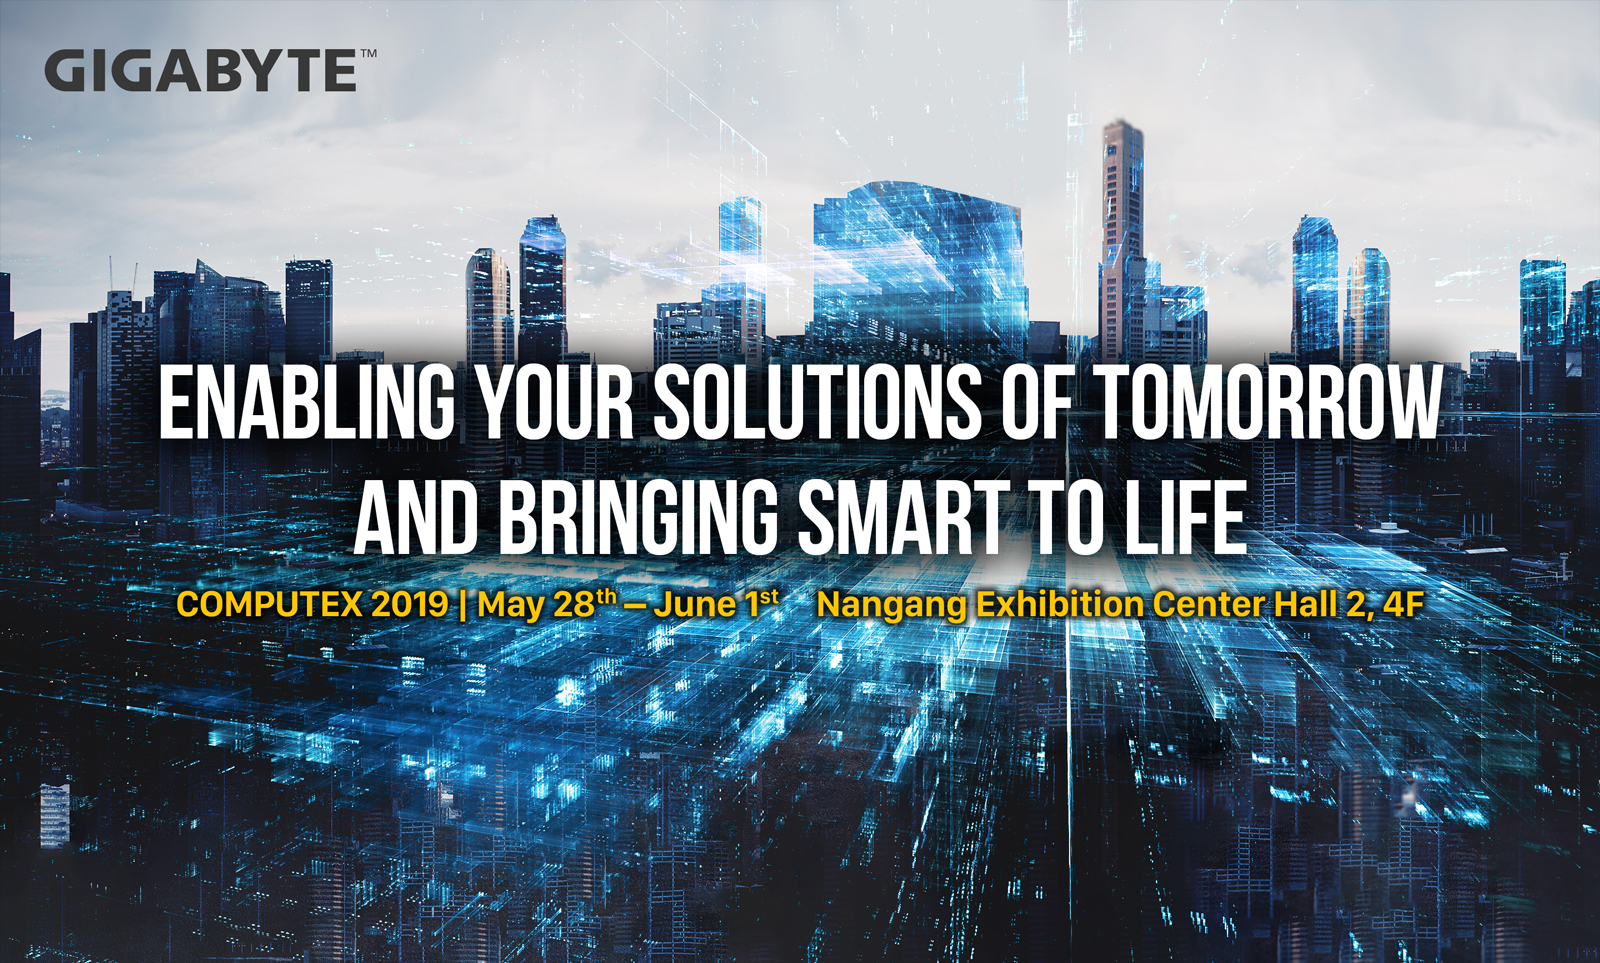 GIGABYTE will enable your solutions of tomorrow and bring smart to